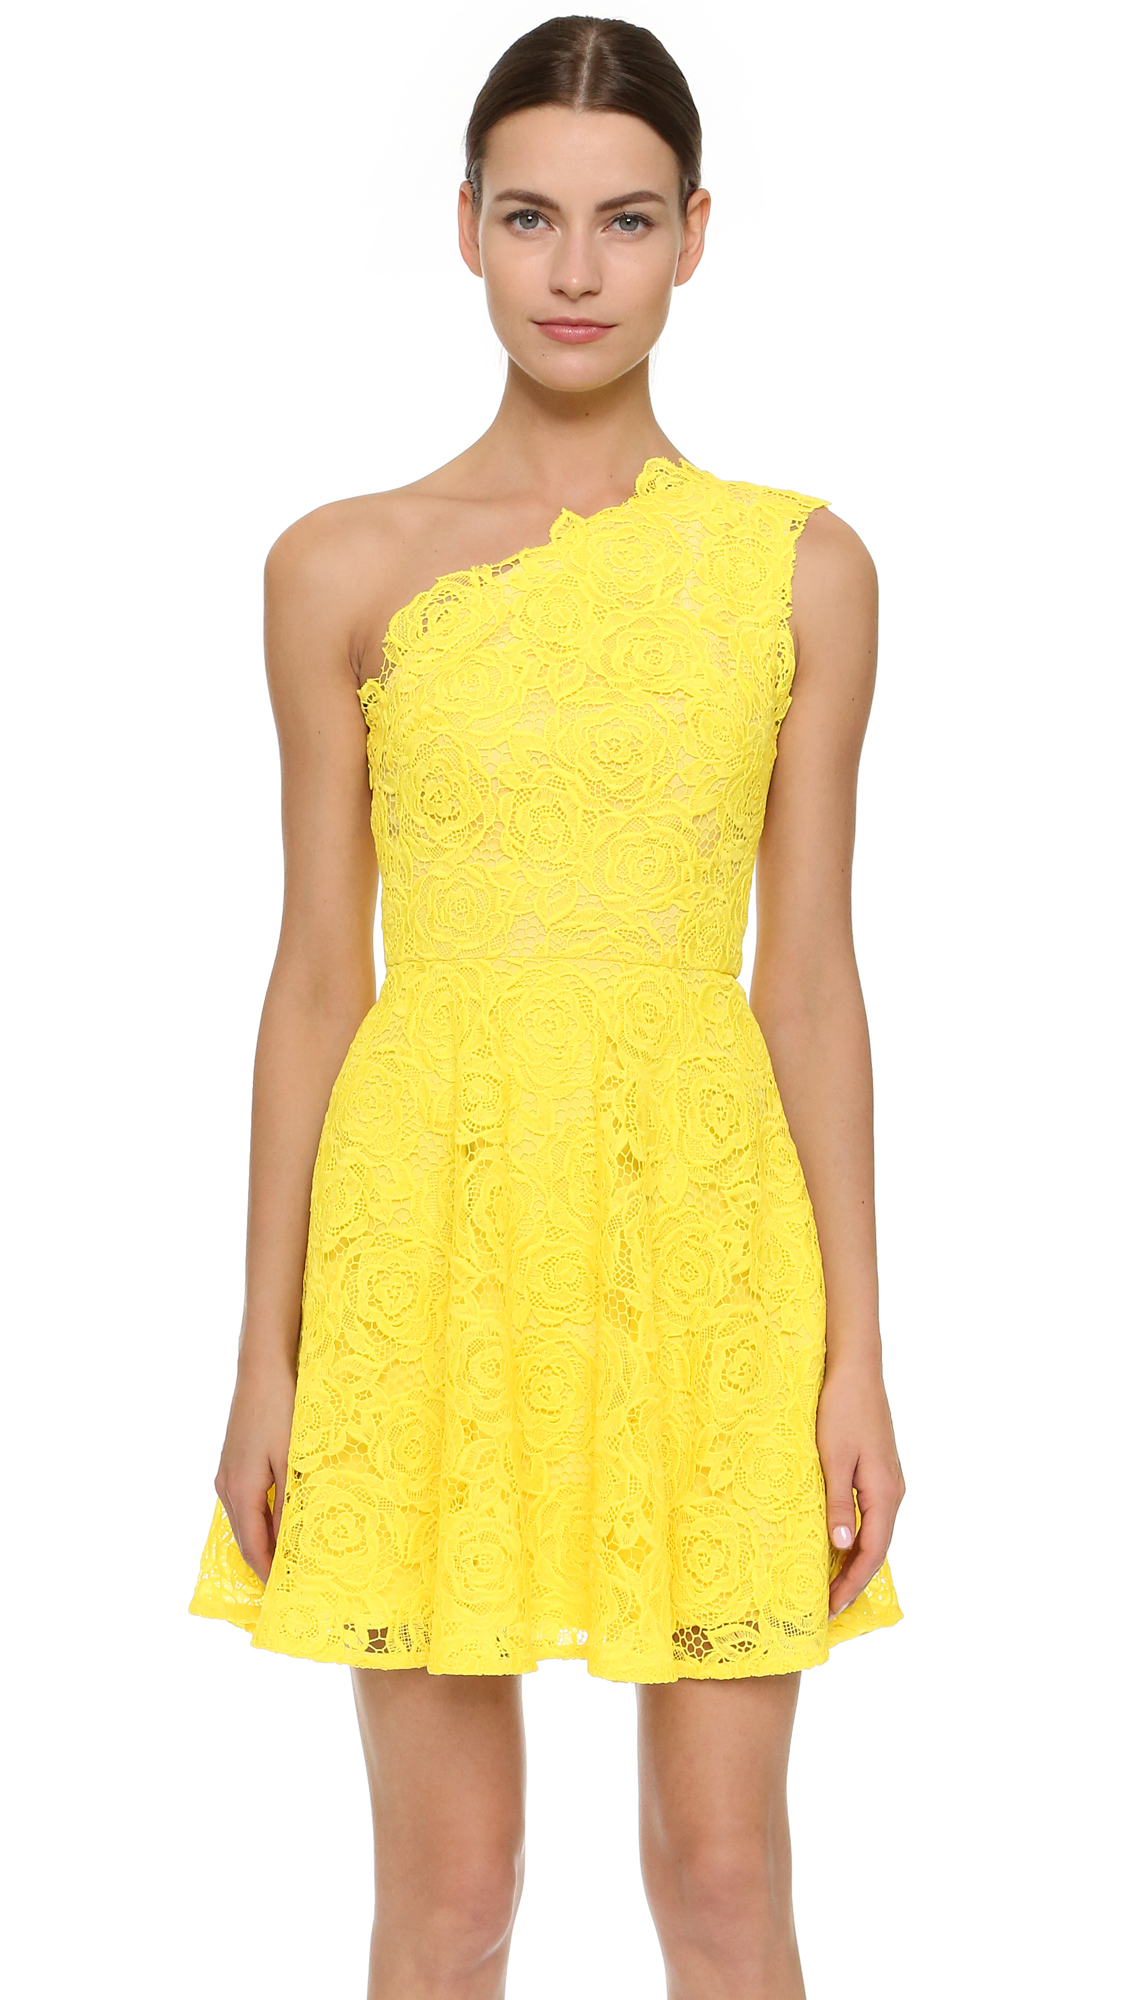 3cb0c1bf0cb2 Lyst - Monique Lhuillier One Shoulder Dress in Yellow